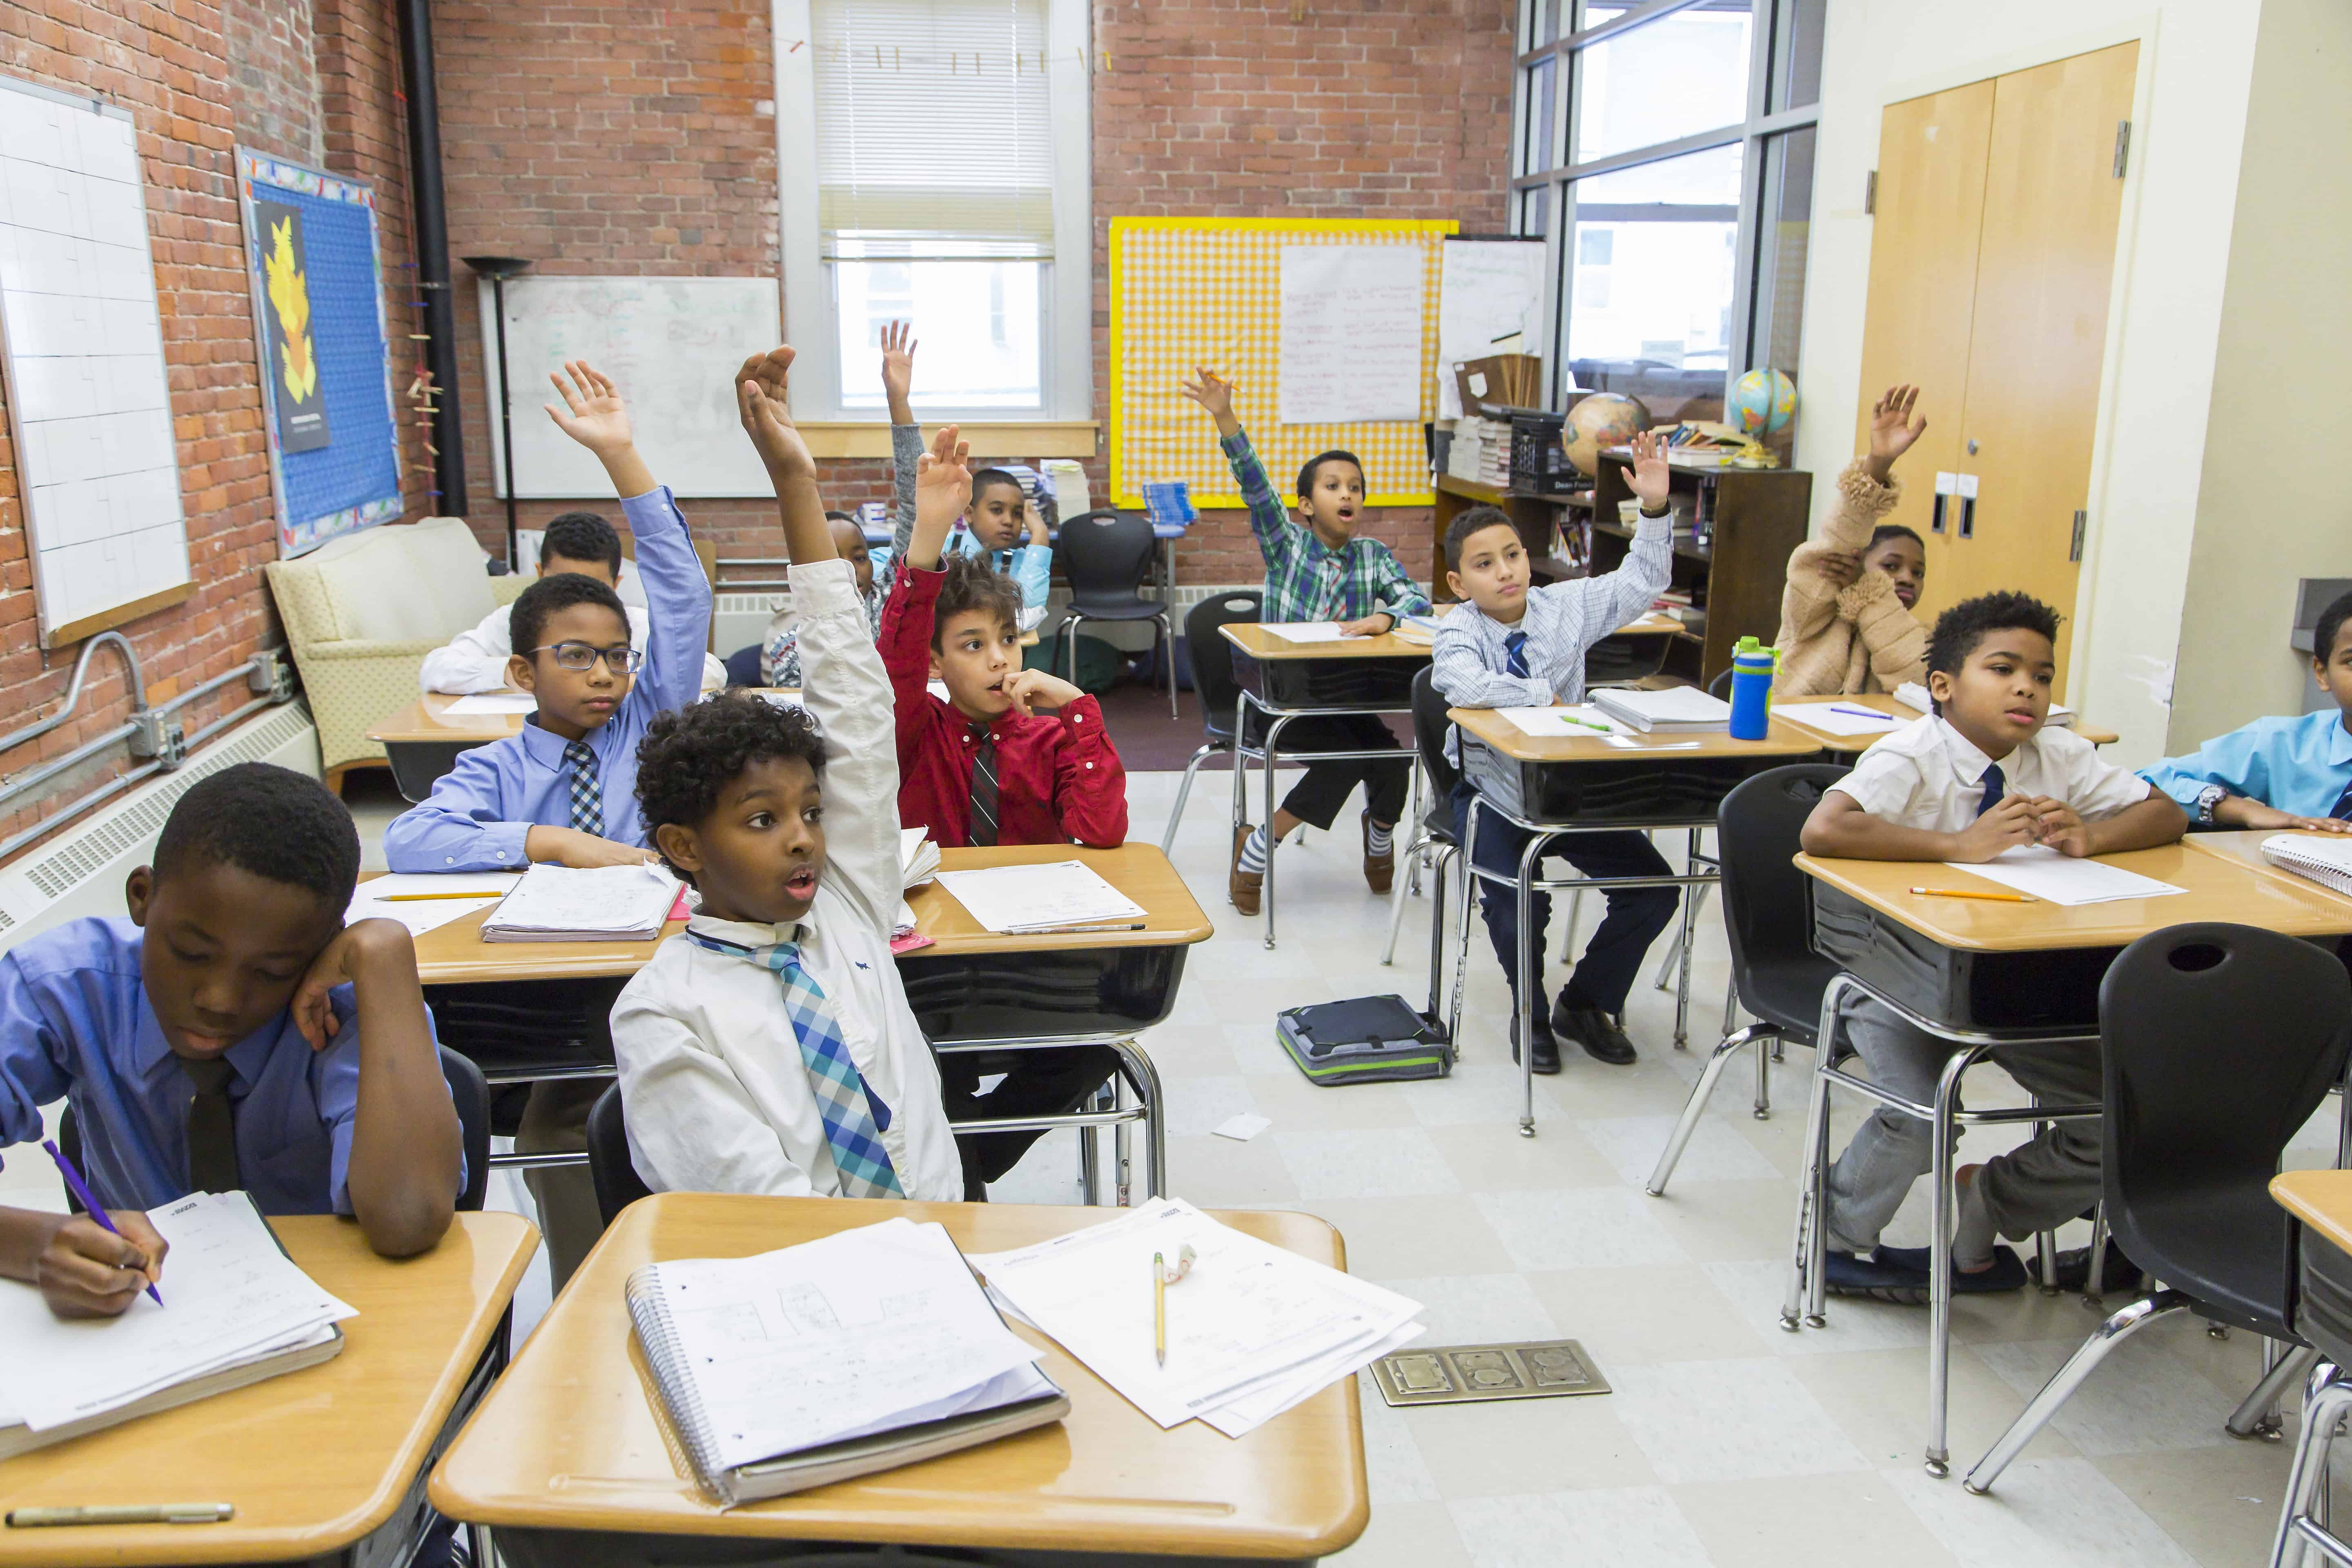 Young students raising their hands in class